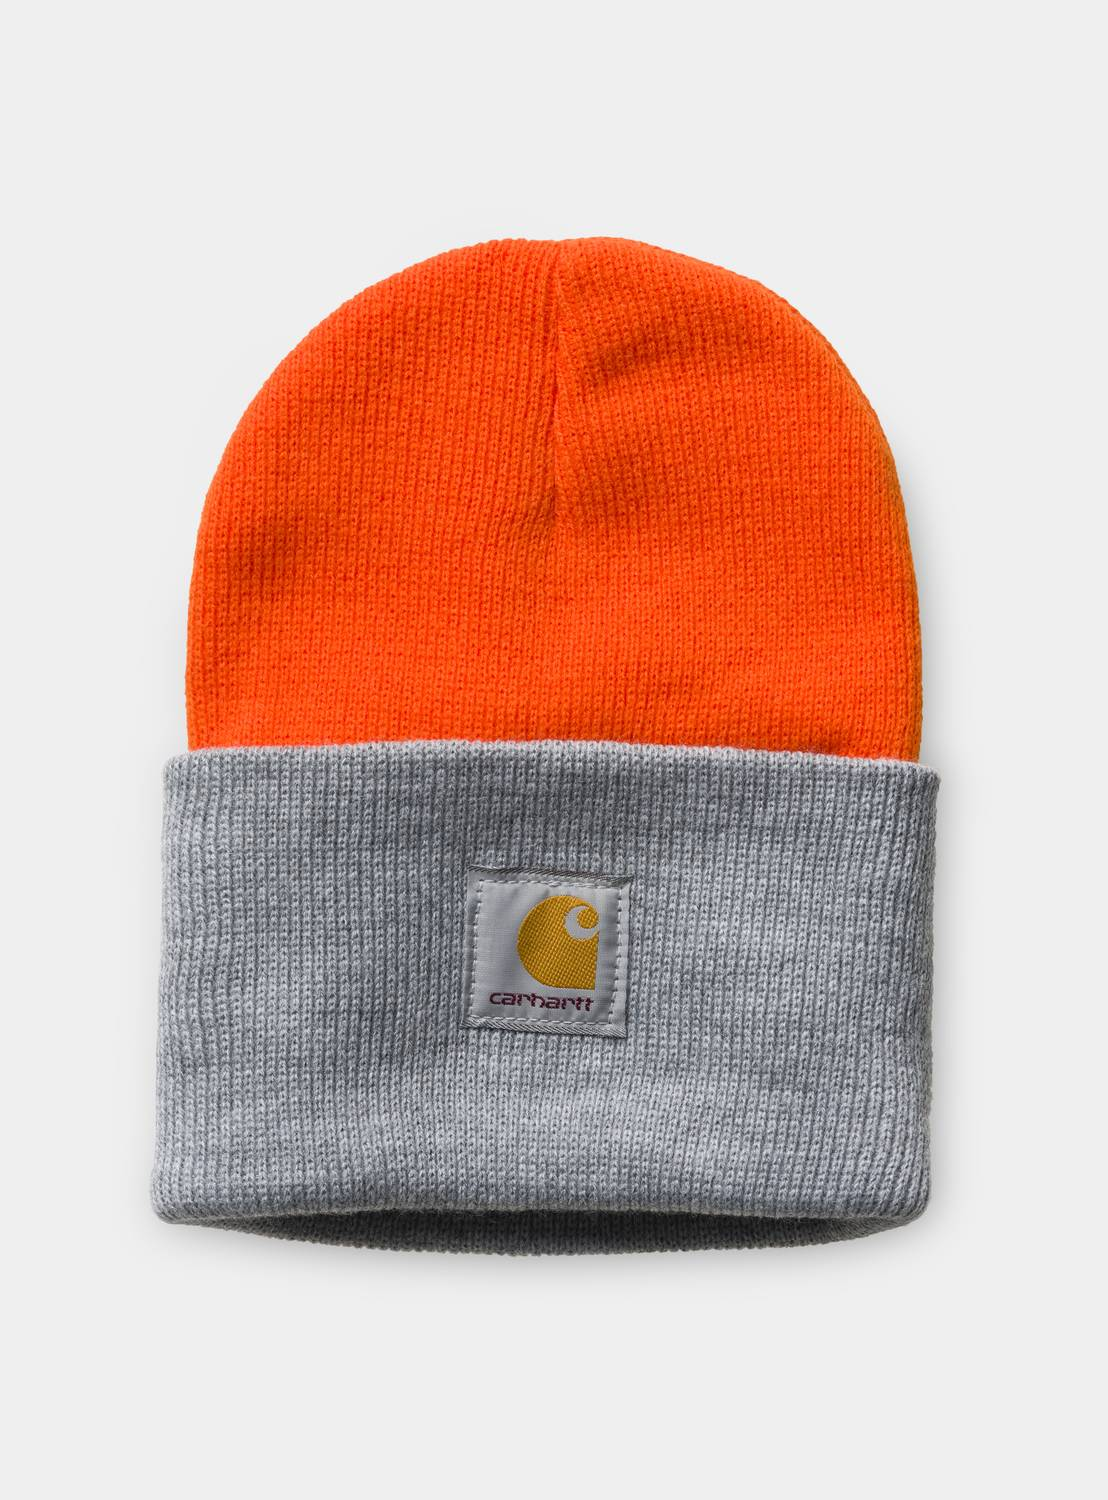 Carhartt WIP Bi-Colored Acrylic Watch Hat  9a97688096b4